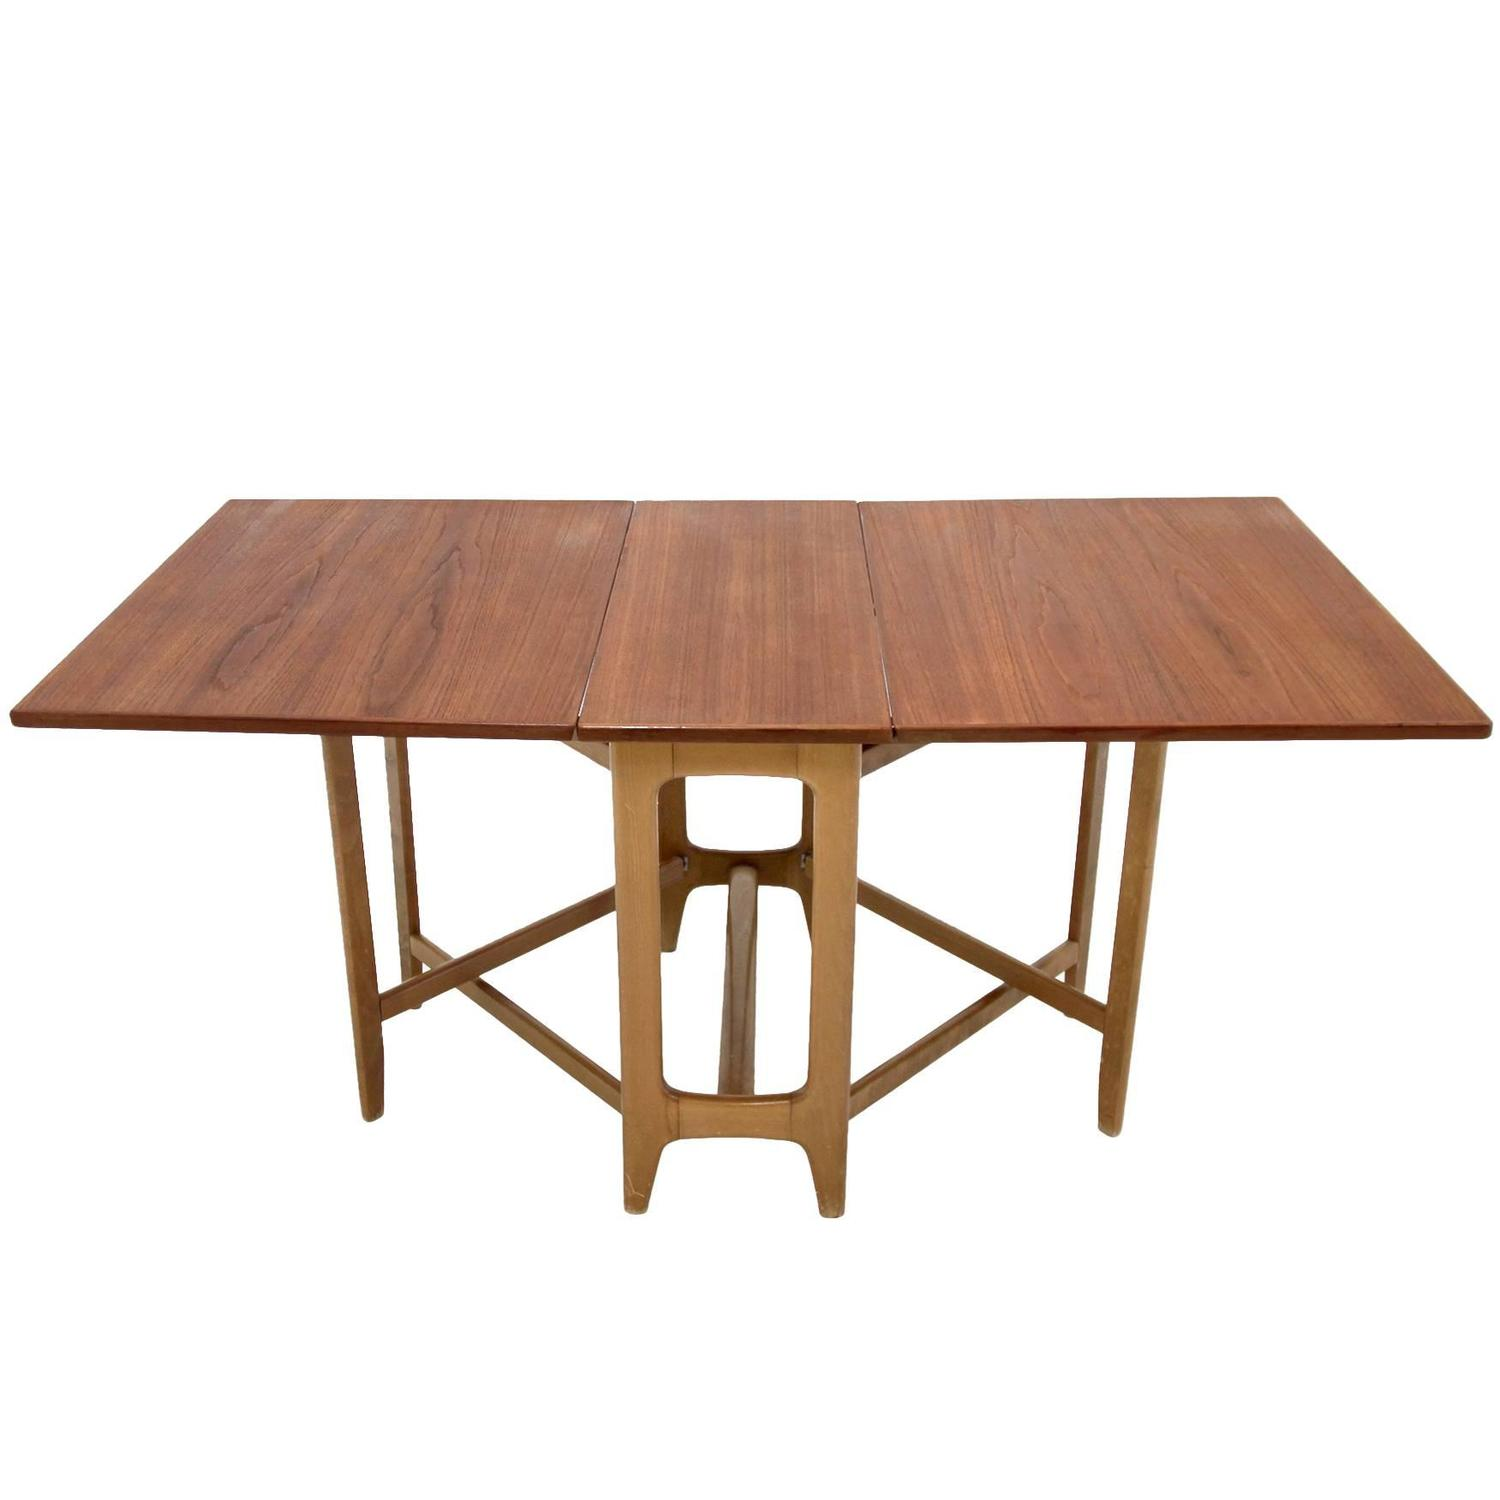 Foldable dining table by bendt winge at 1stdibs - Foldable dining table ...